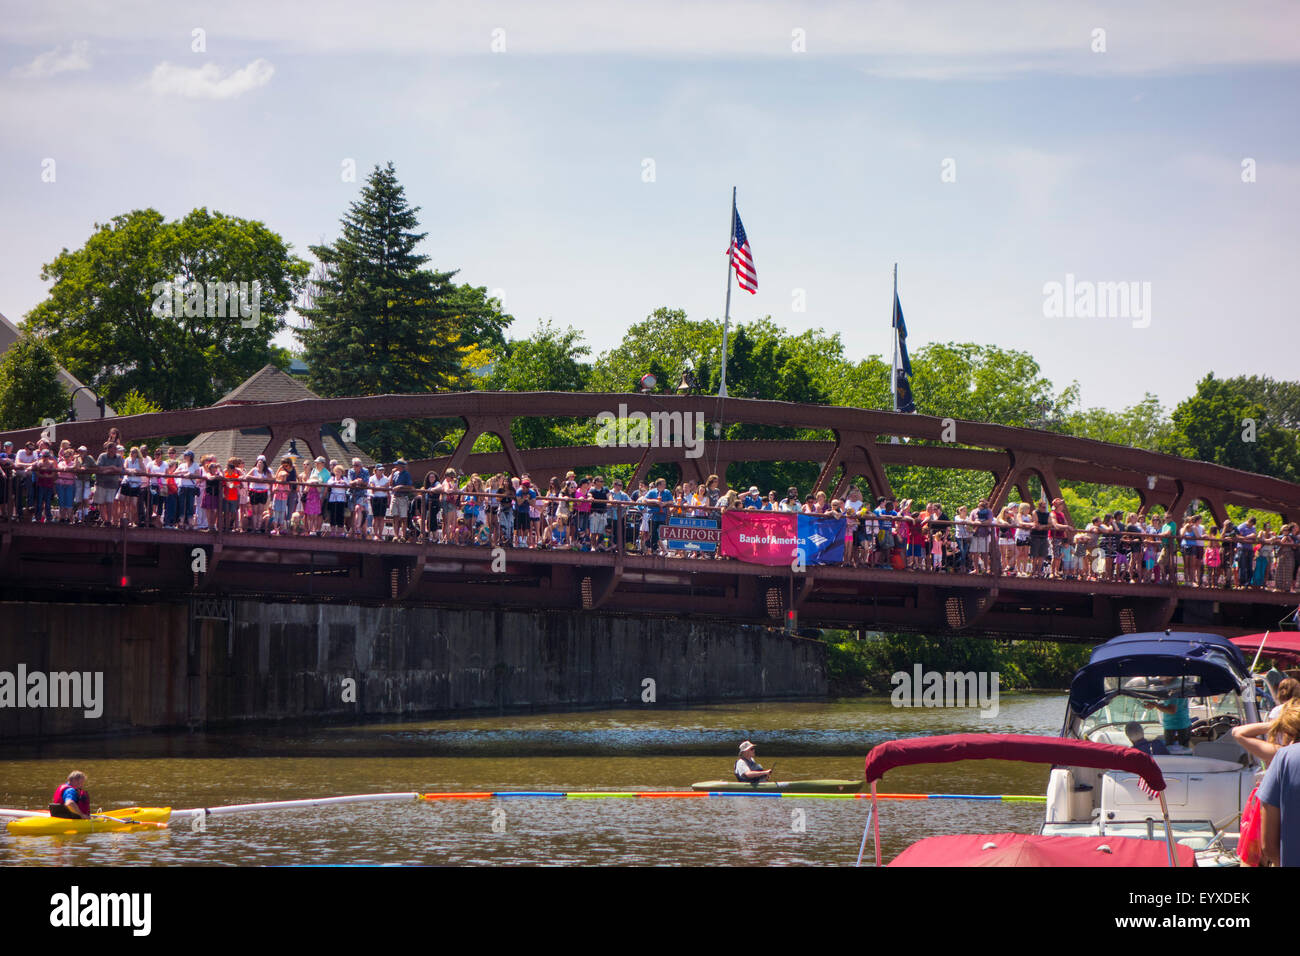 Fairport New York canal festival - Stock Image